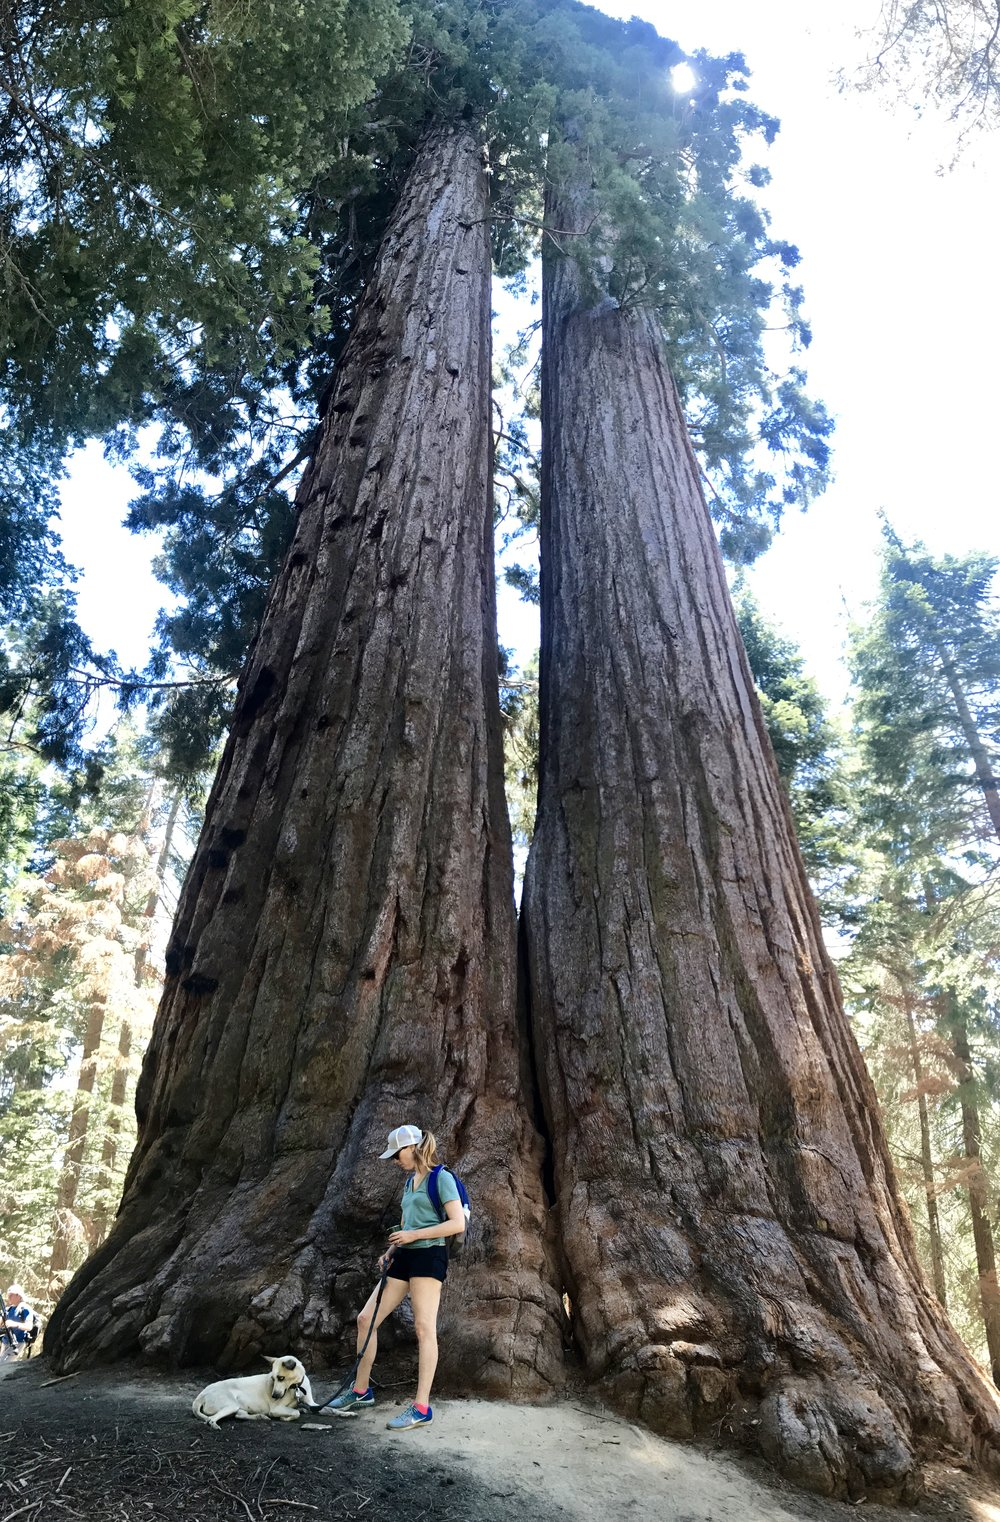 B and her dog, Trail of 100 Giants, Sequoia National Forest, California